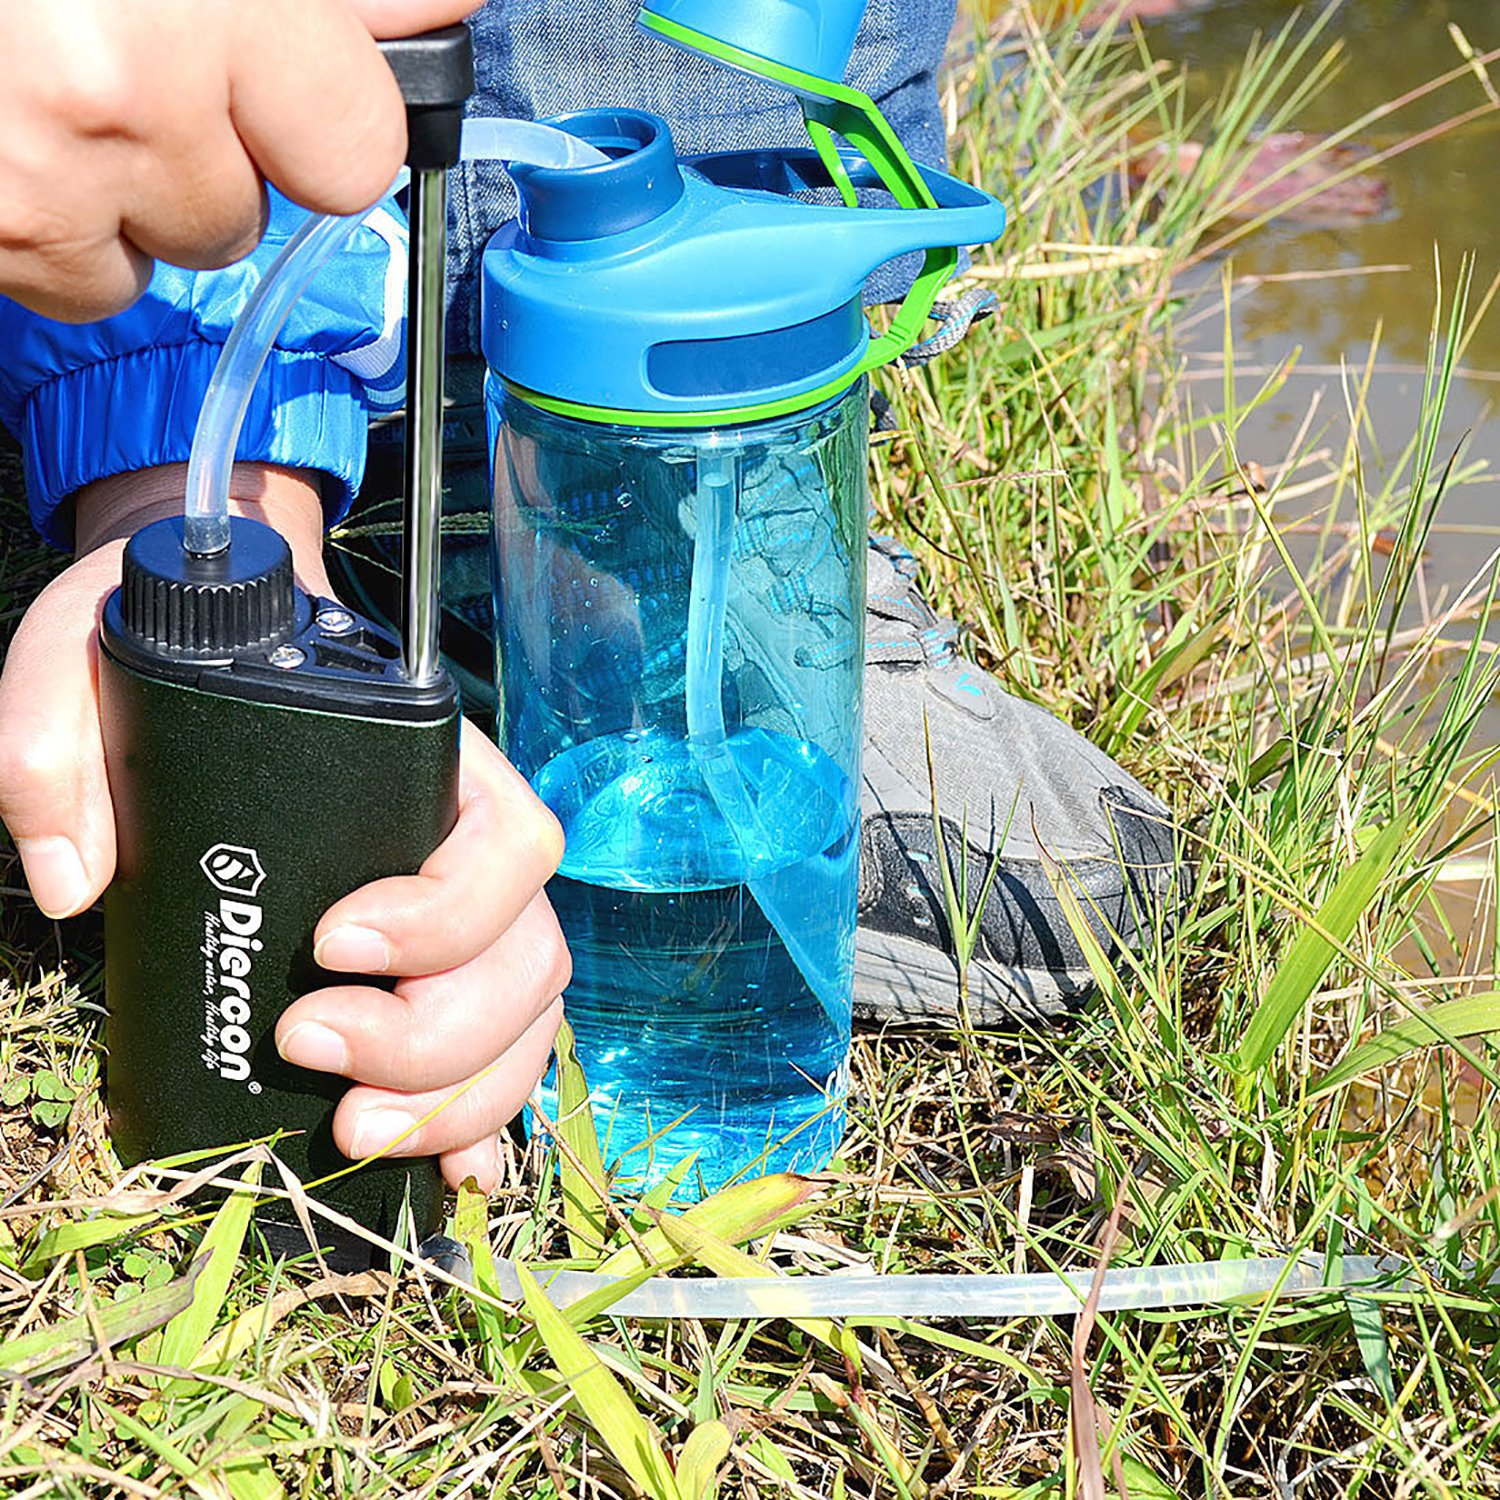 14bab83aa0 Amazon.com: Diercon Tactical Water Microfilter -Upgraded Aluminium  Monocoque Body, Portable Water Filter Pump with 3 Stage Purification,  Emergency Water ...